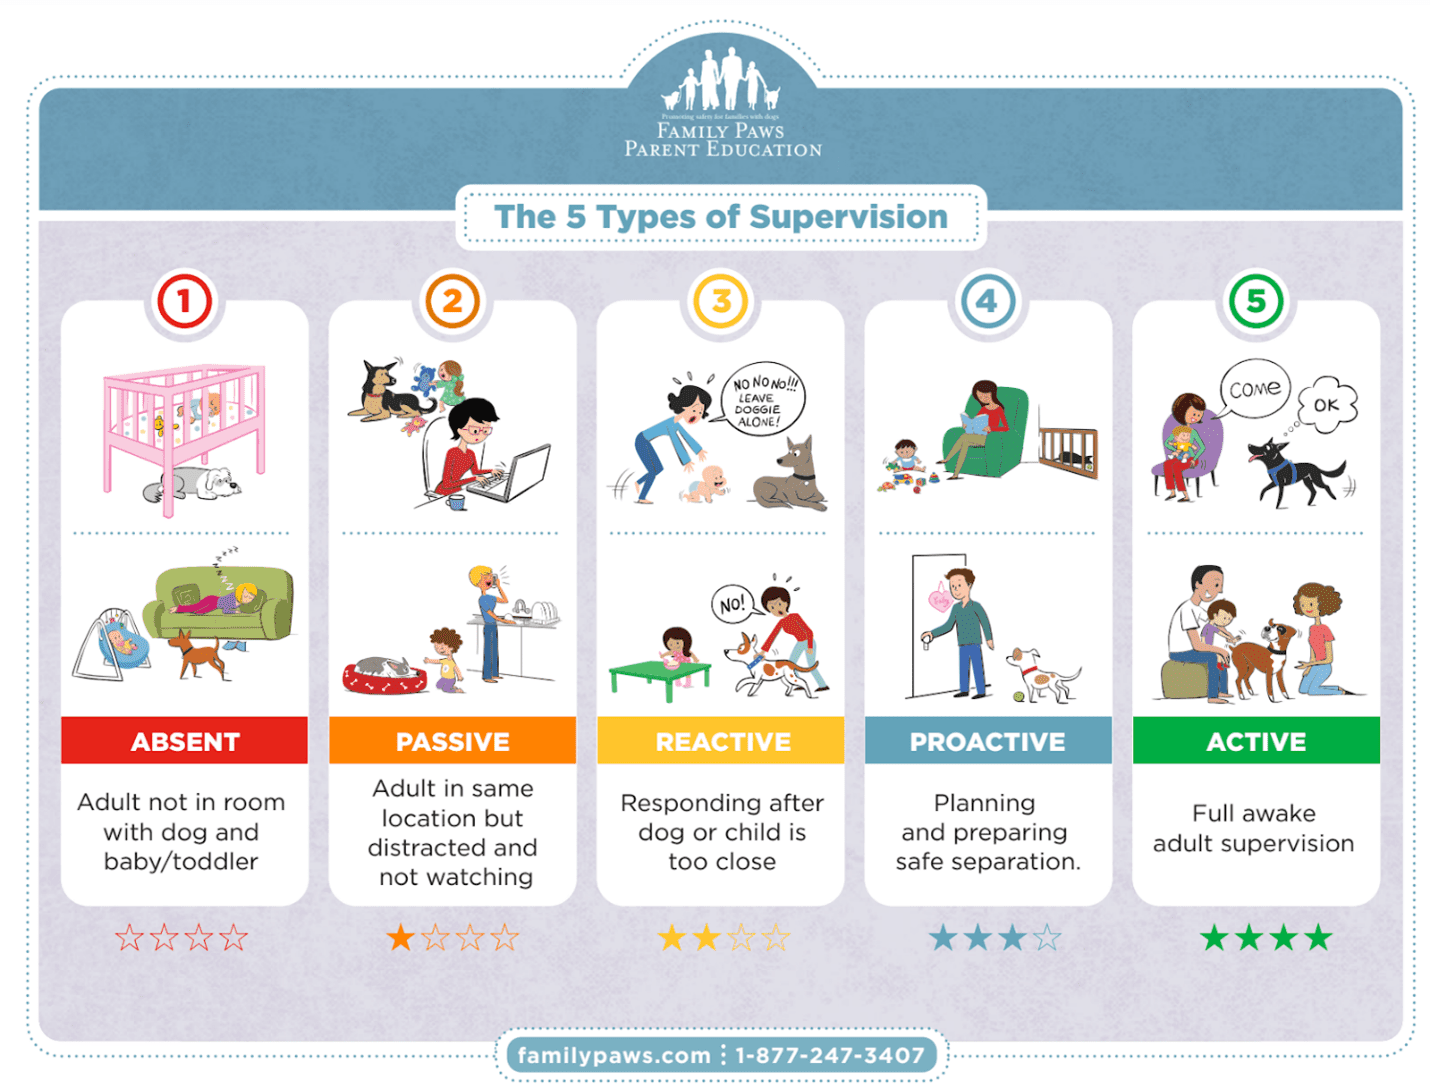 Diagram of 5 Types of Supervision for Pets and Babies.